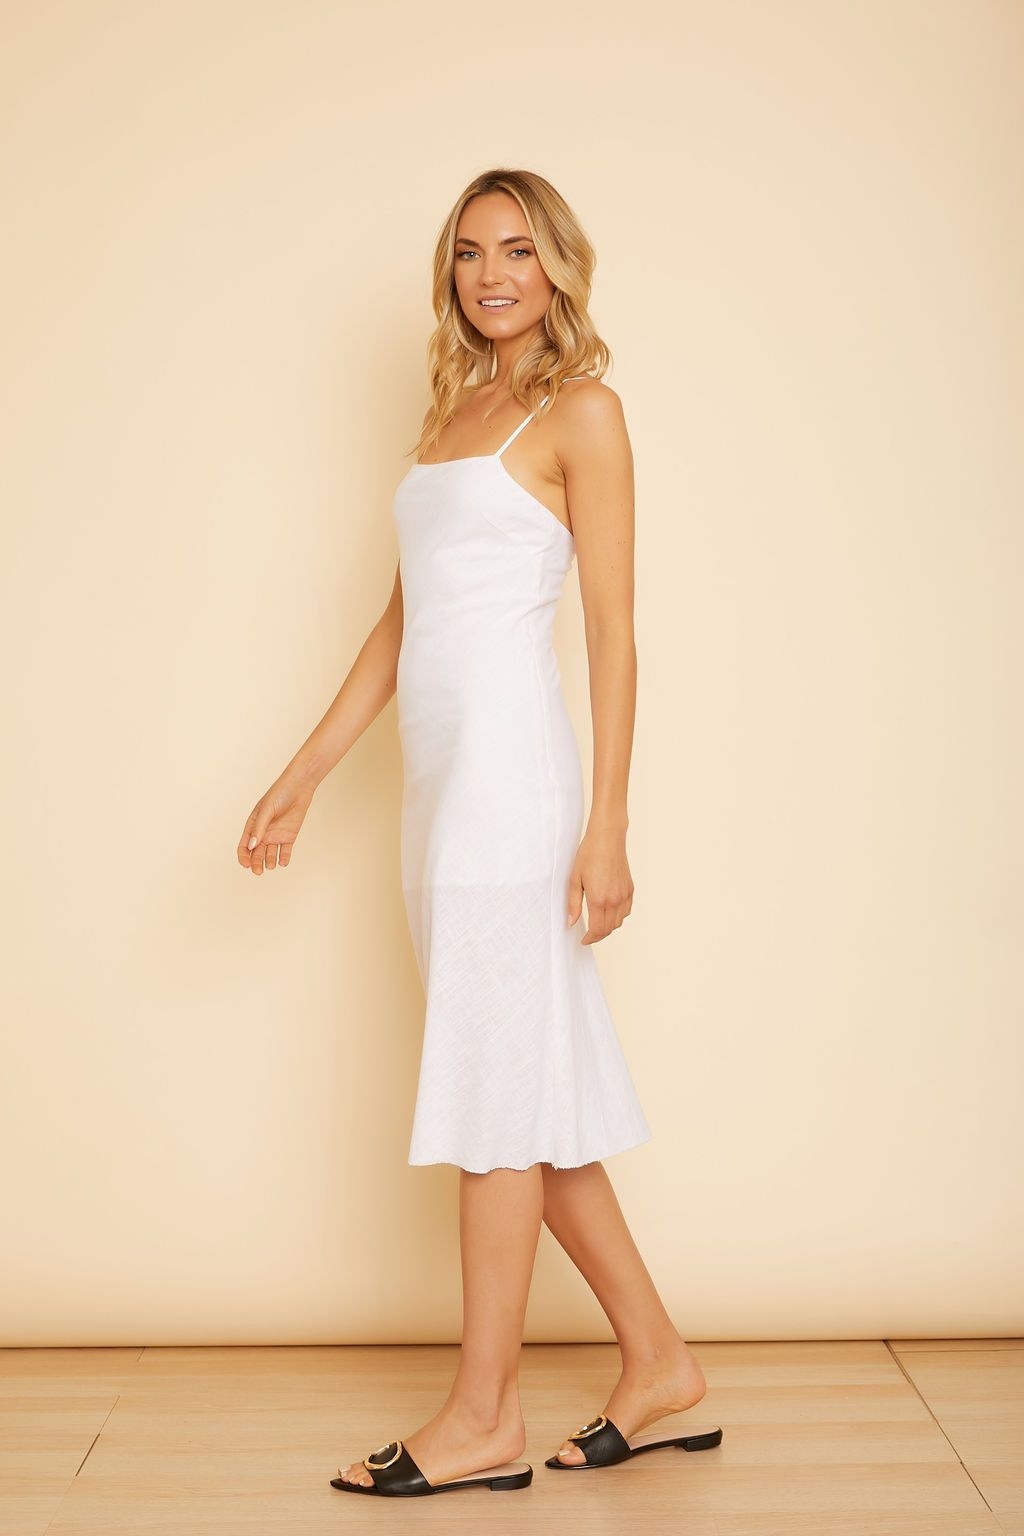 Gaby Linen Sleeveless Dress - wearNYLA